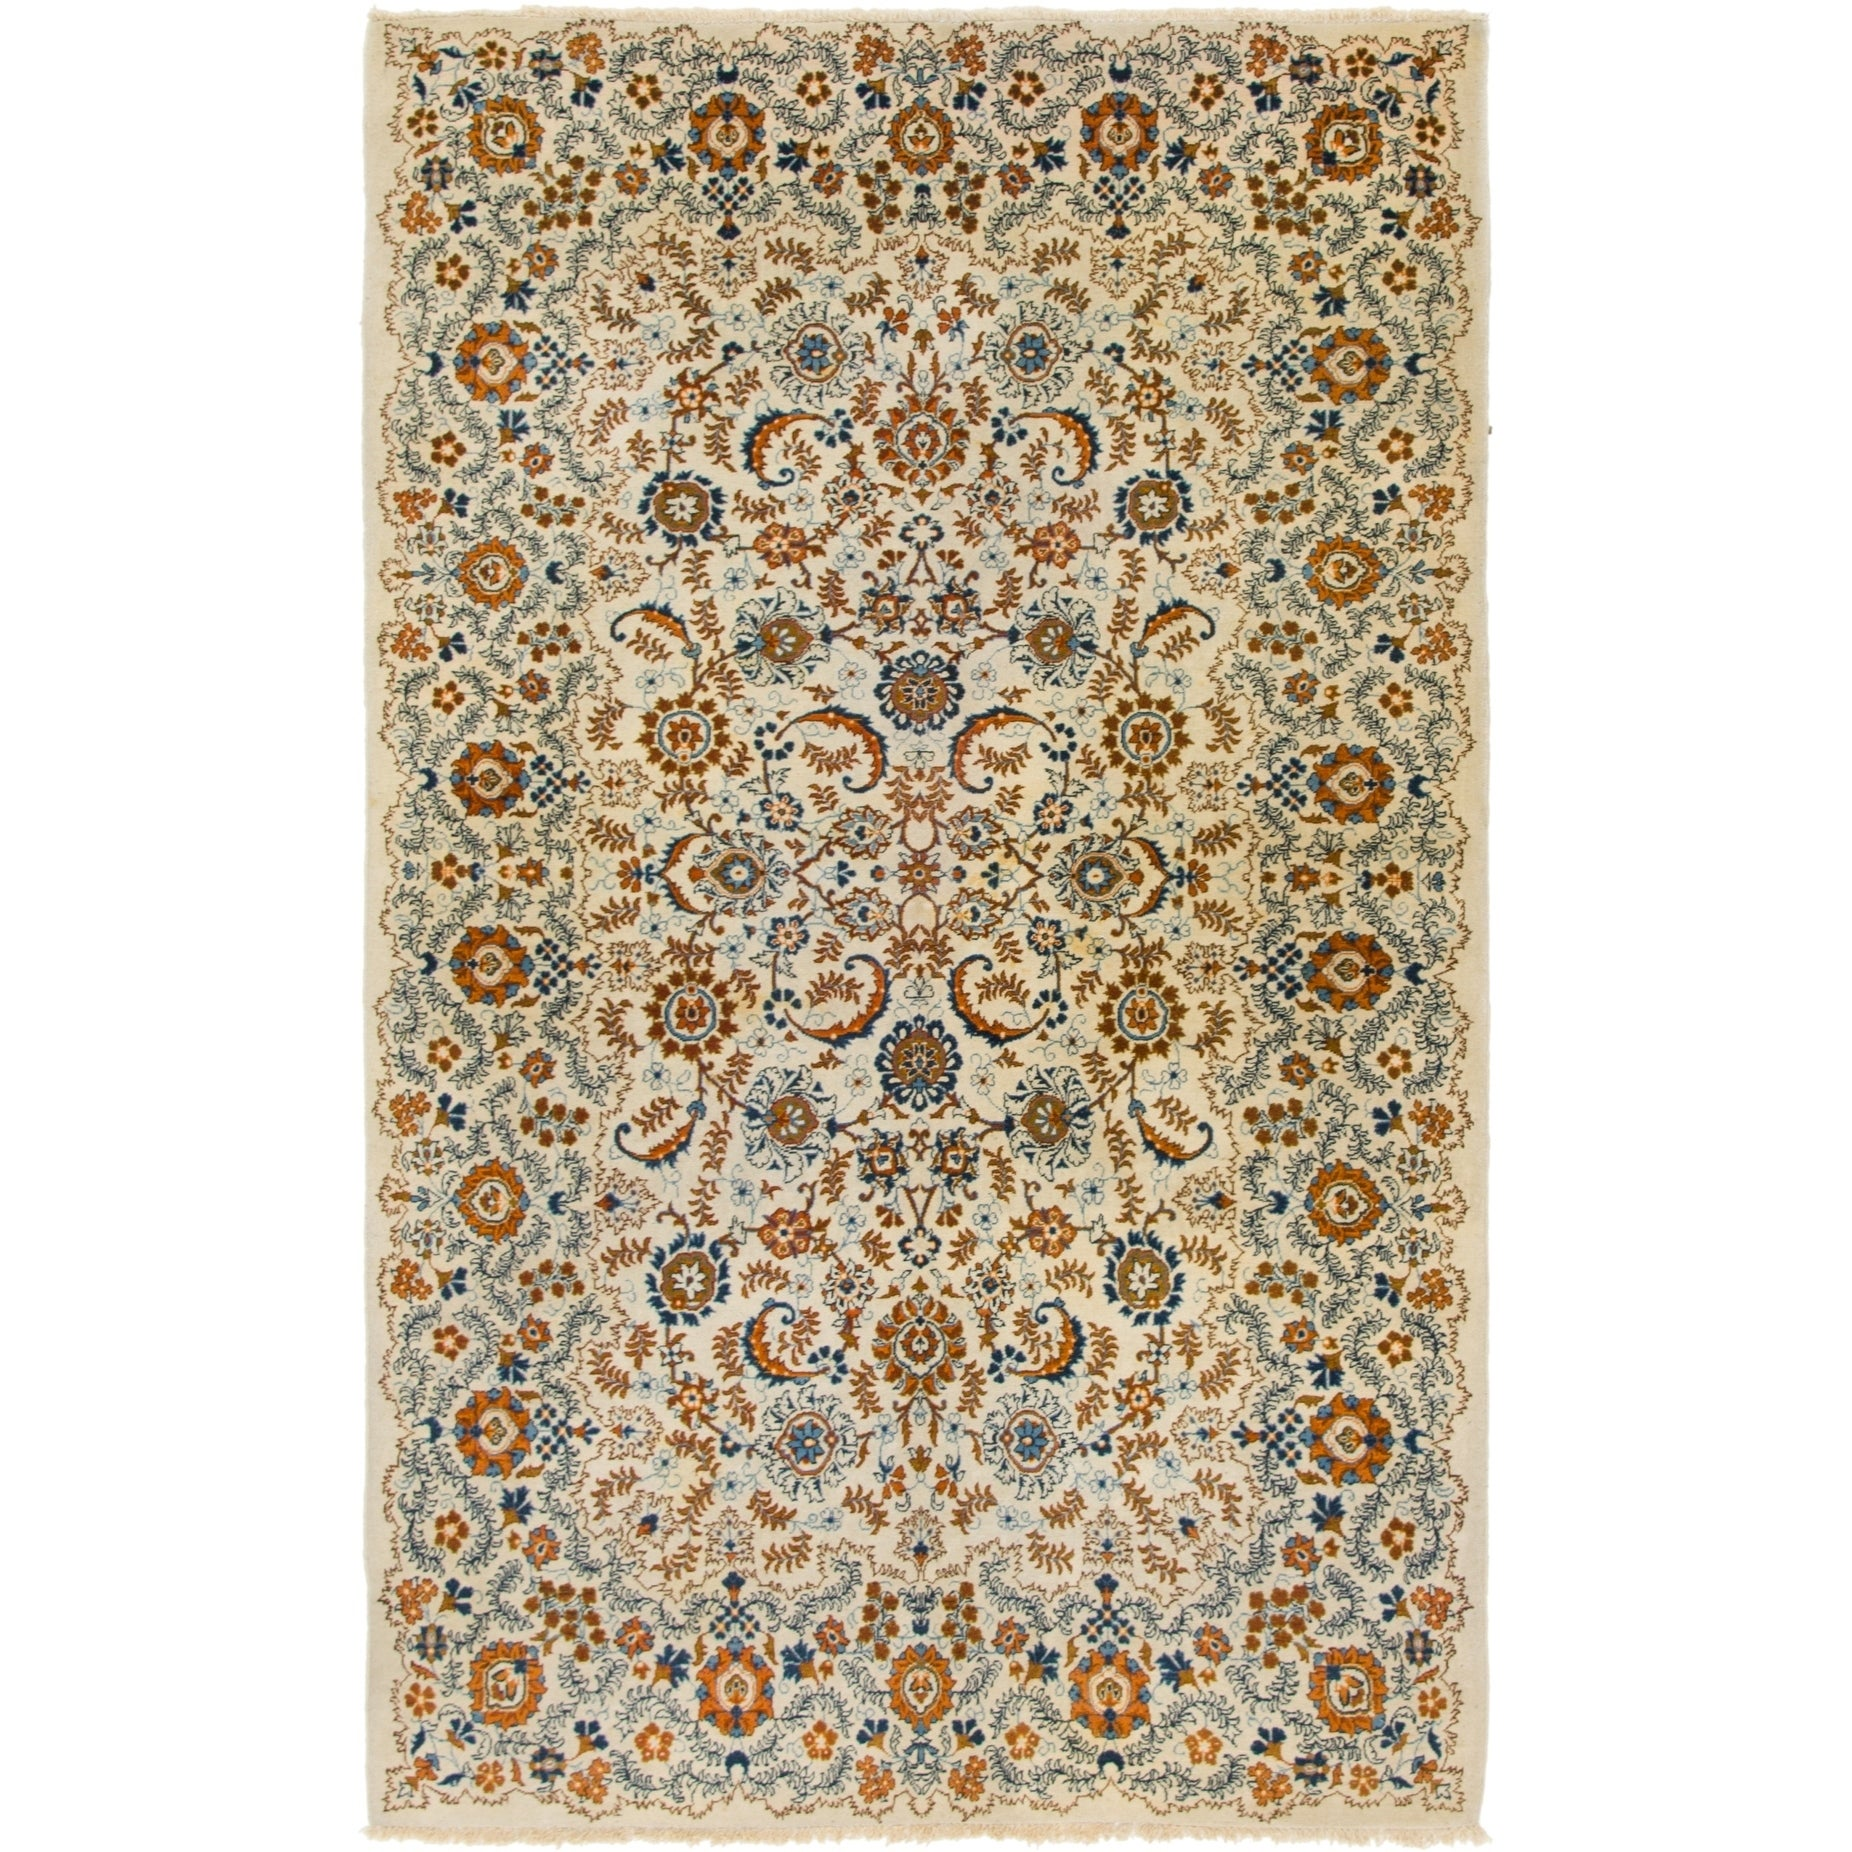 Hand Knotted Kashan Semi Antique Wool Area Rug - 4 8 x 7 8 (Ivory - 4 8 x 7 8)